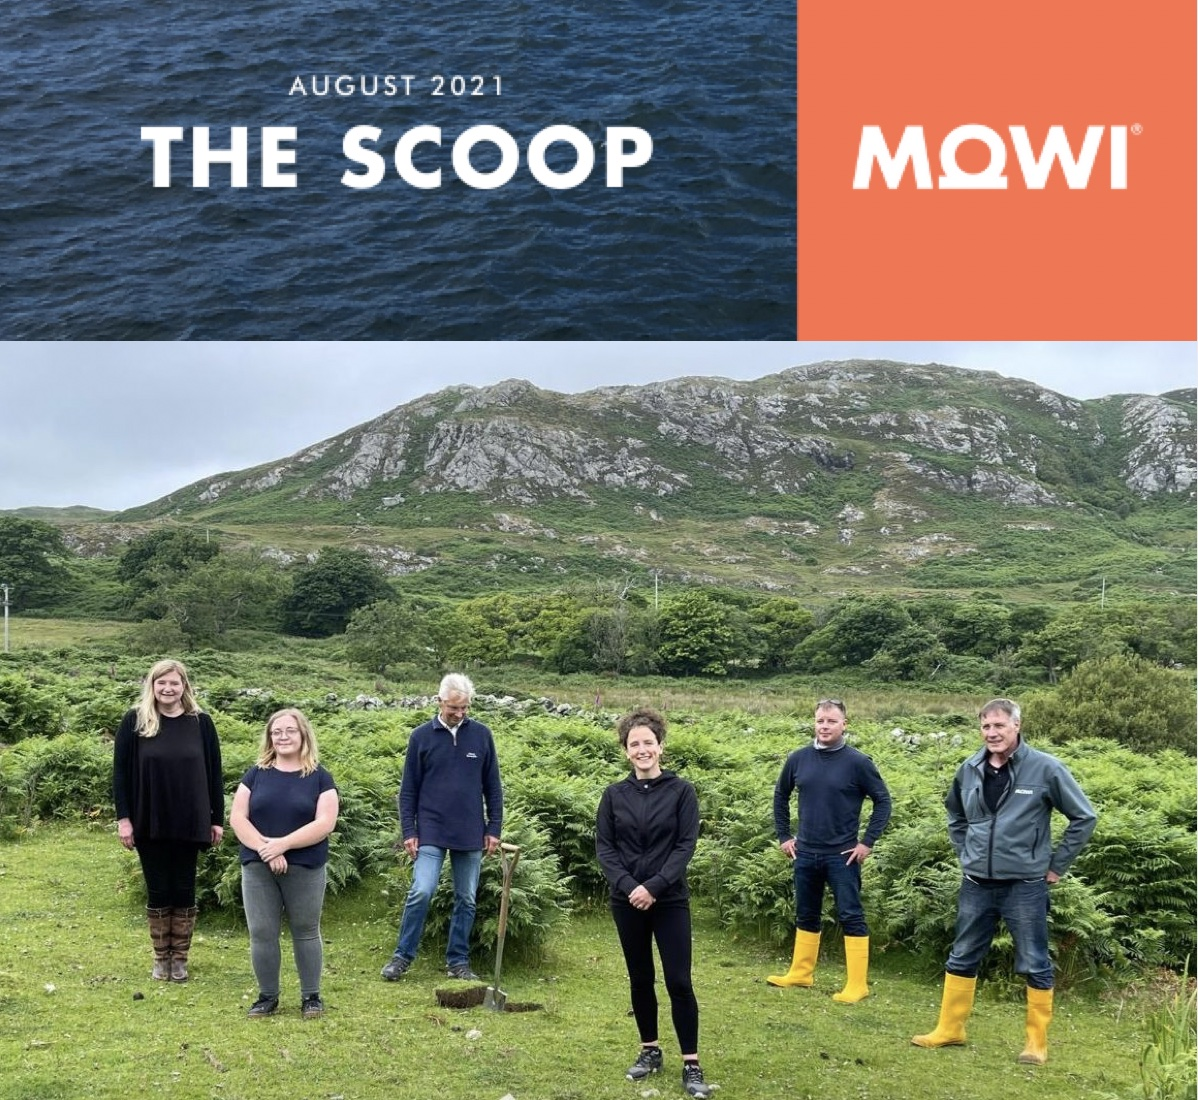 The SCOOP – August 2021 issue